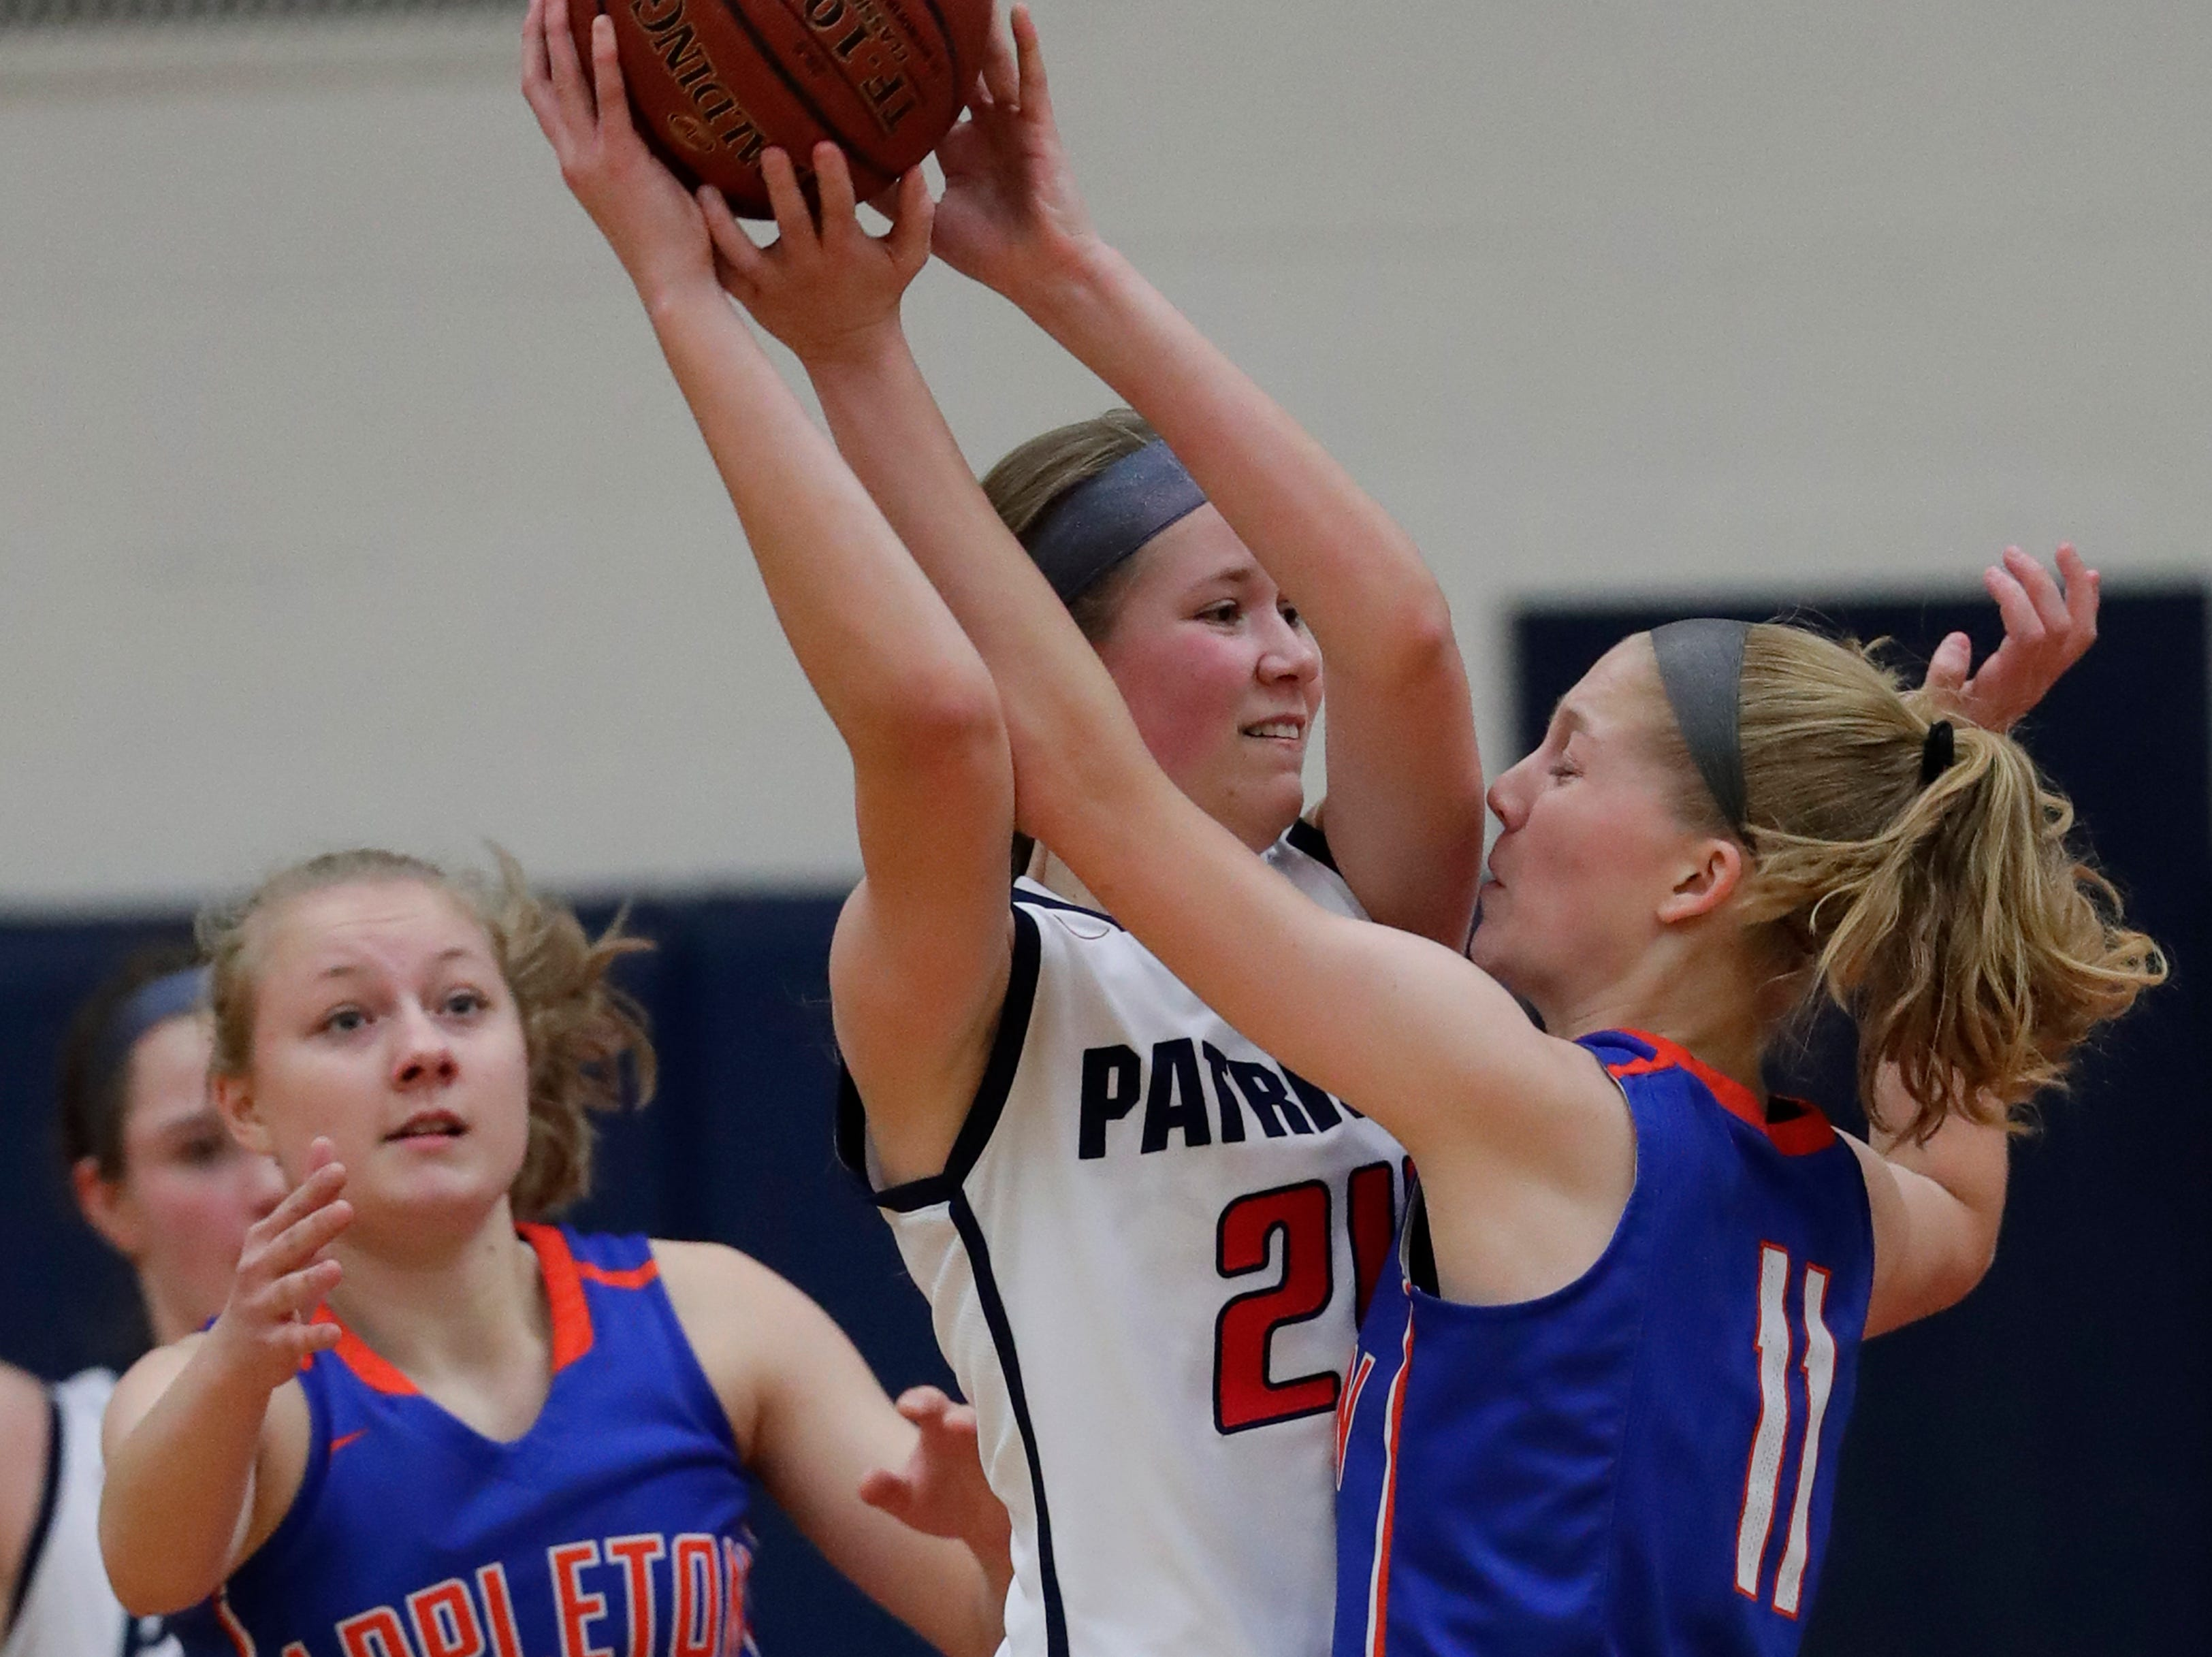 Appleton East High School's Delaney Clark (24) tries to pass the ball against Appleton West High School's Bree Workman (5) and Jamie Winsted (11) during their girls basketball game Friday, January 11, 2019, at Appleton East High School in Appleton, Wis. 